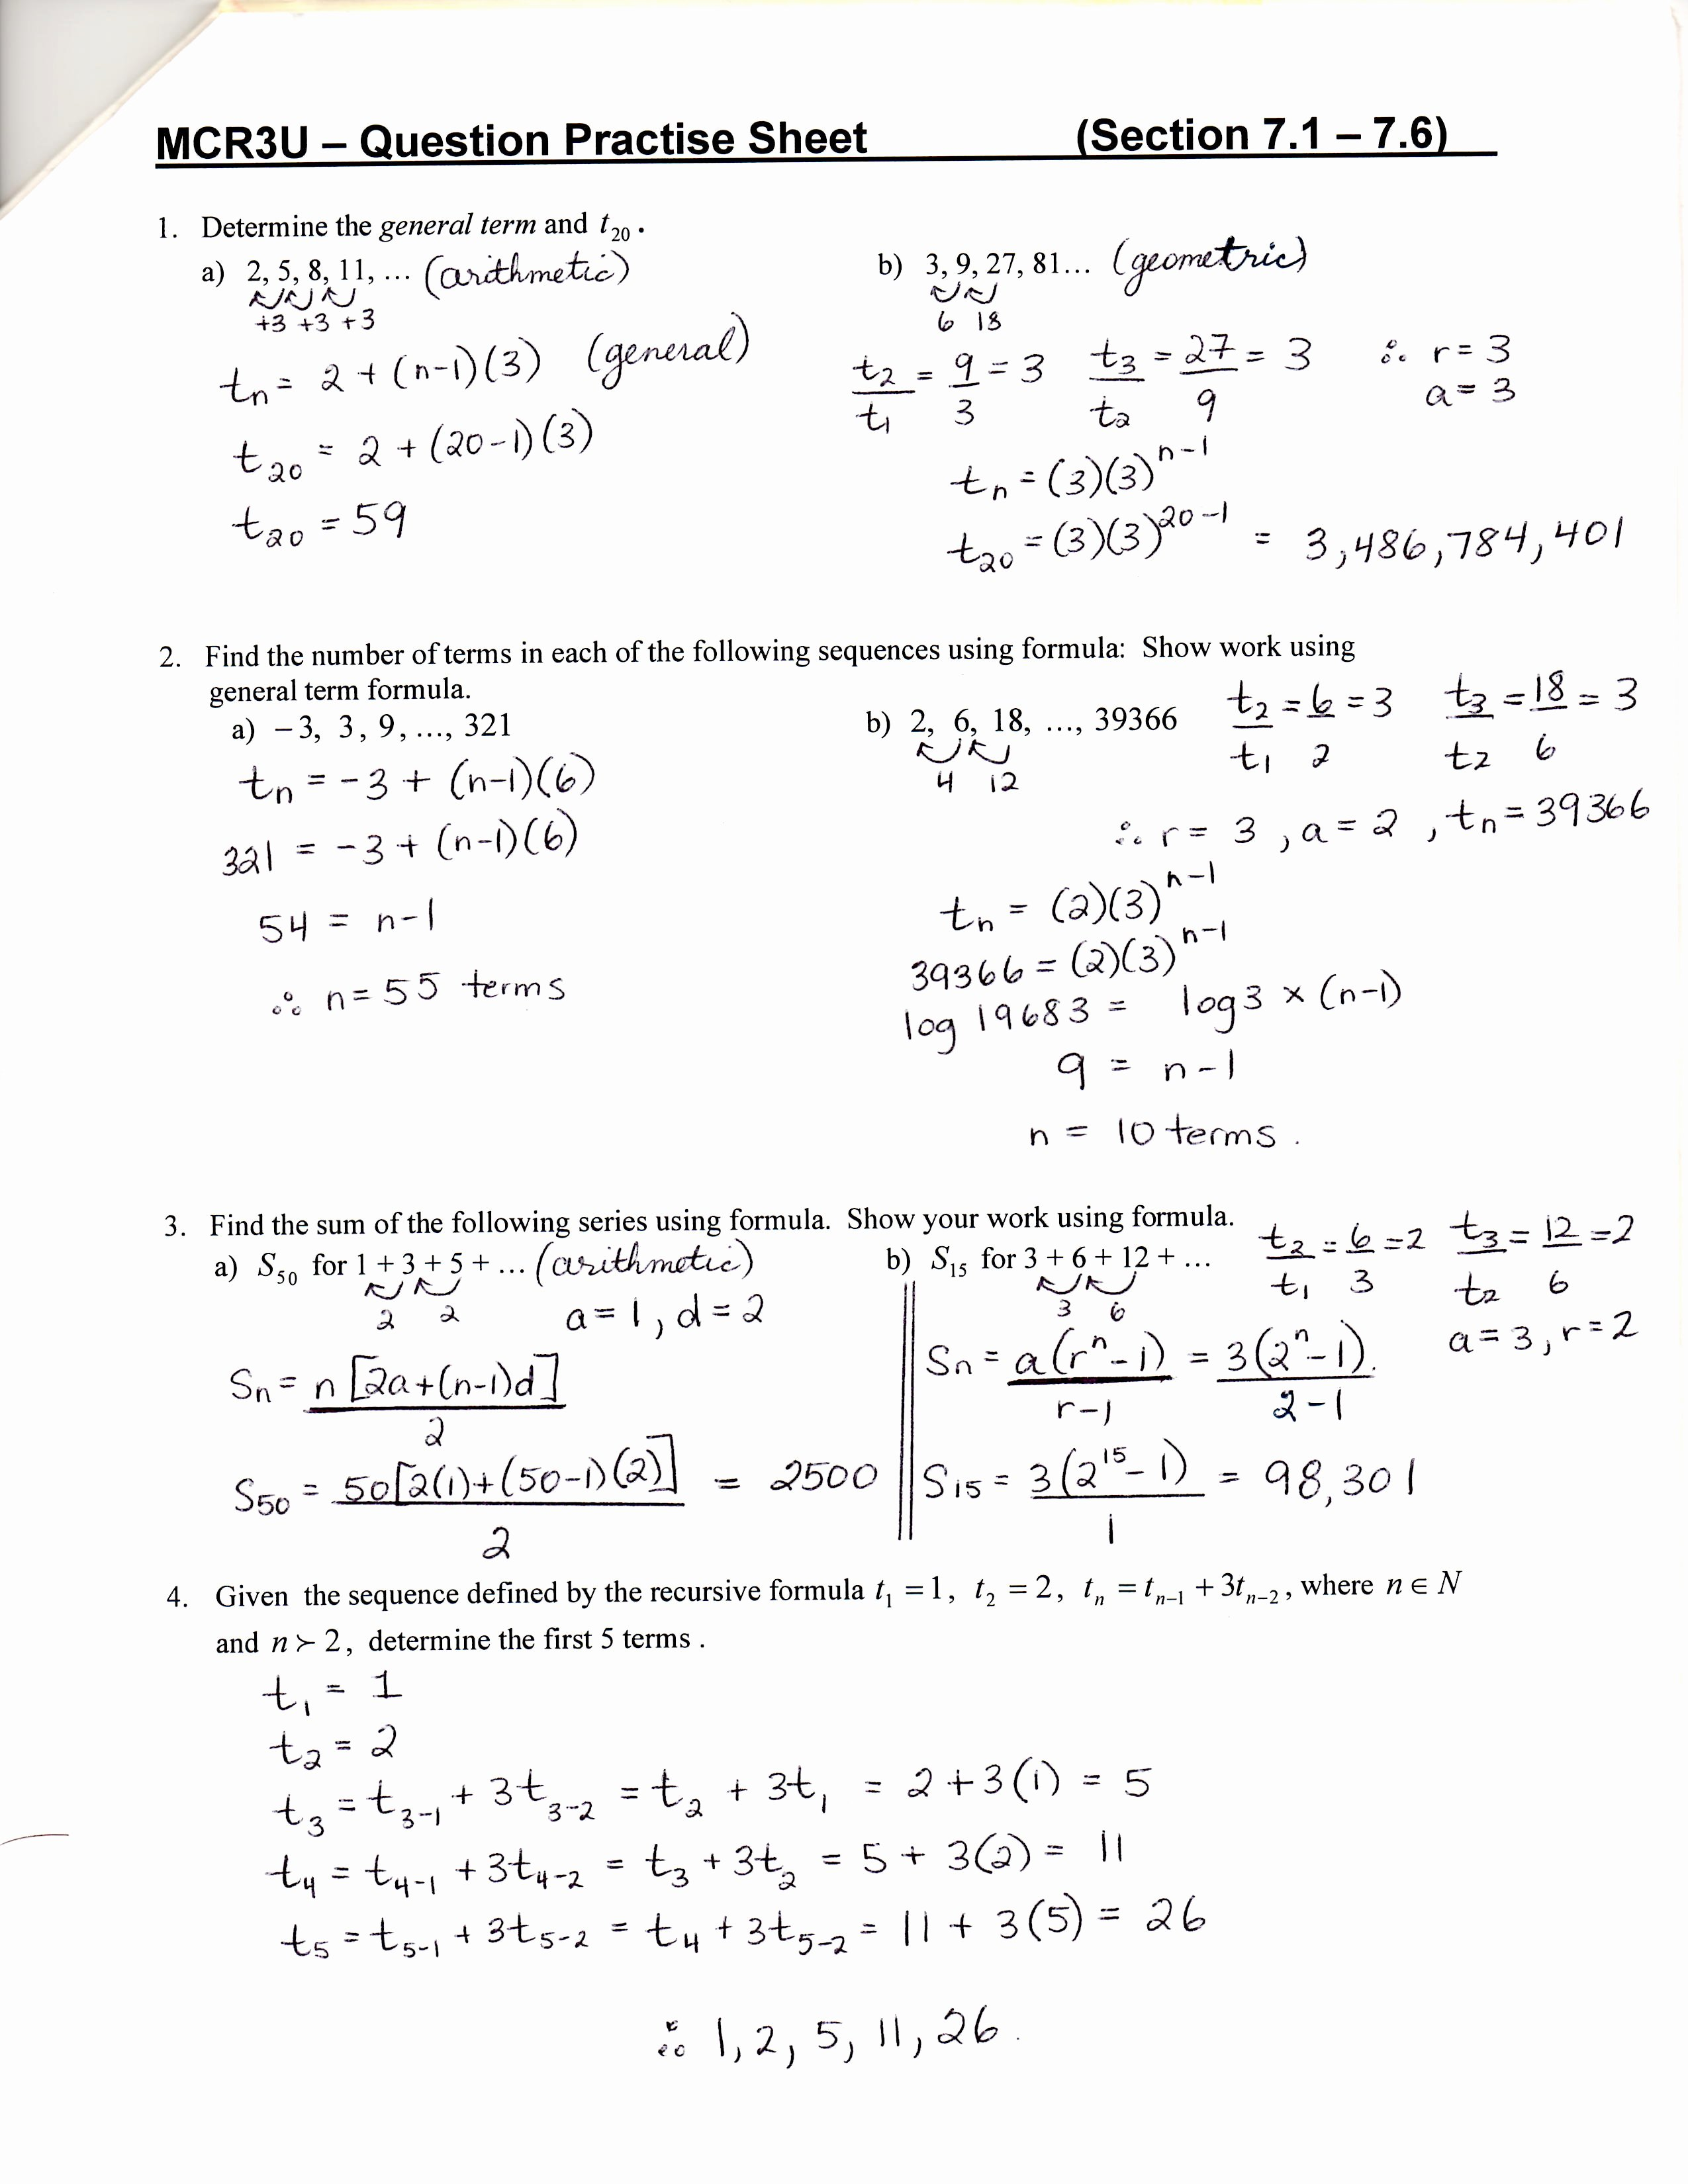 Sequences and Series Worksheet Answers New Unit 7 & 8 Sequences Series and Financial Applications